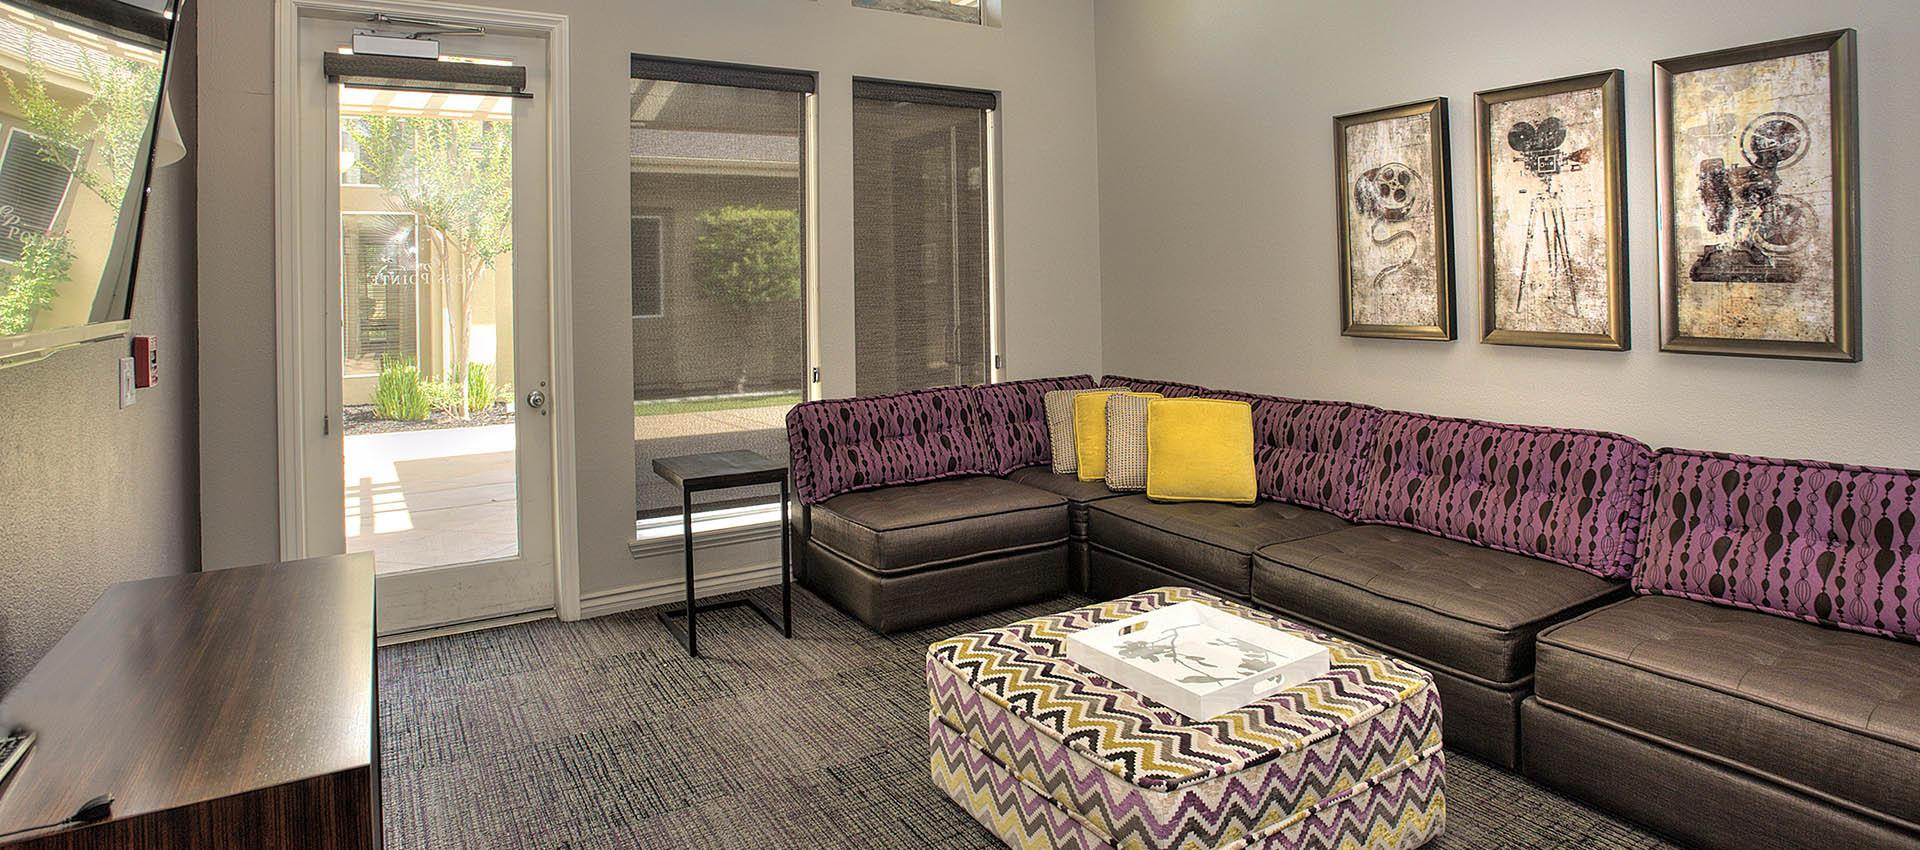 Resident screening room at Cross Pointe Apartment Homes in Antioch